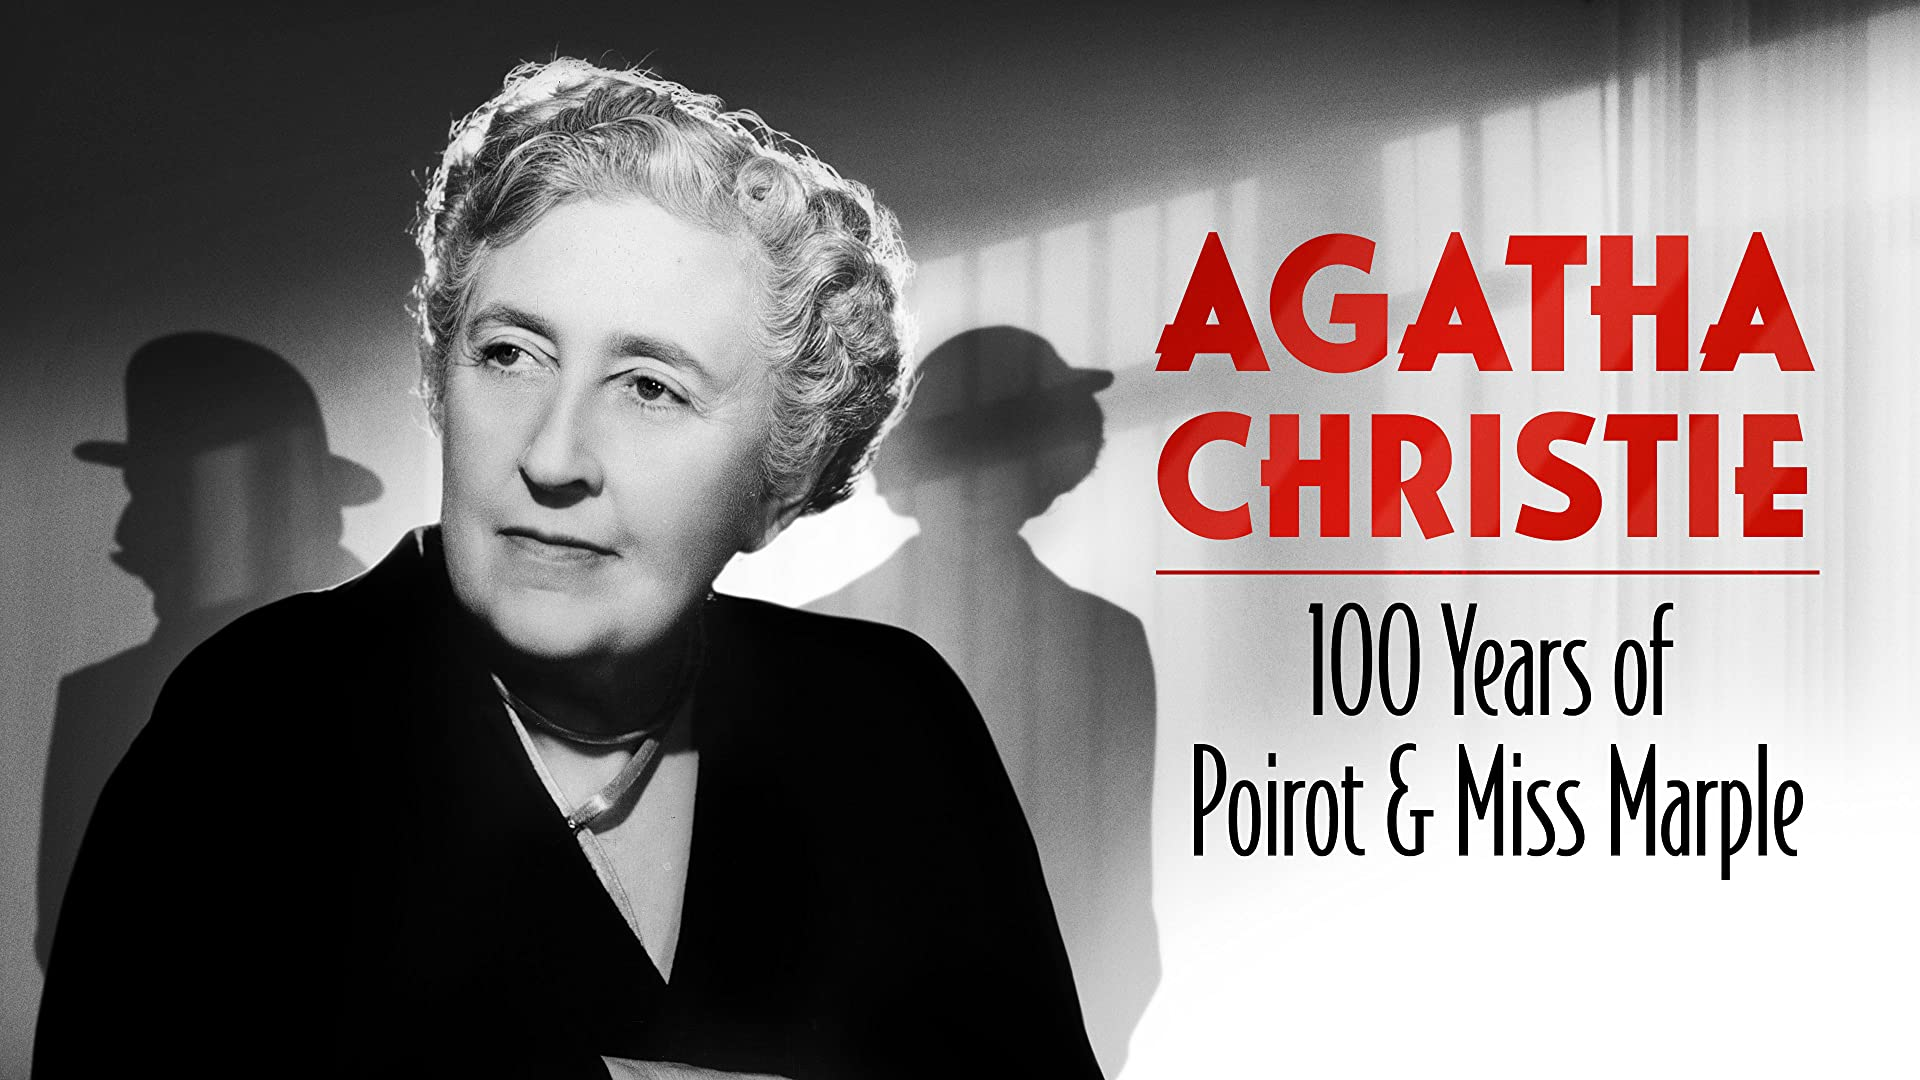 Agatha Christie: 100 Years of Poirot and Miss Marple